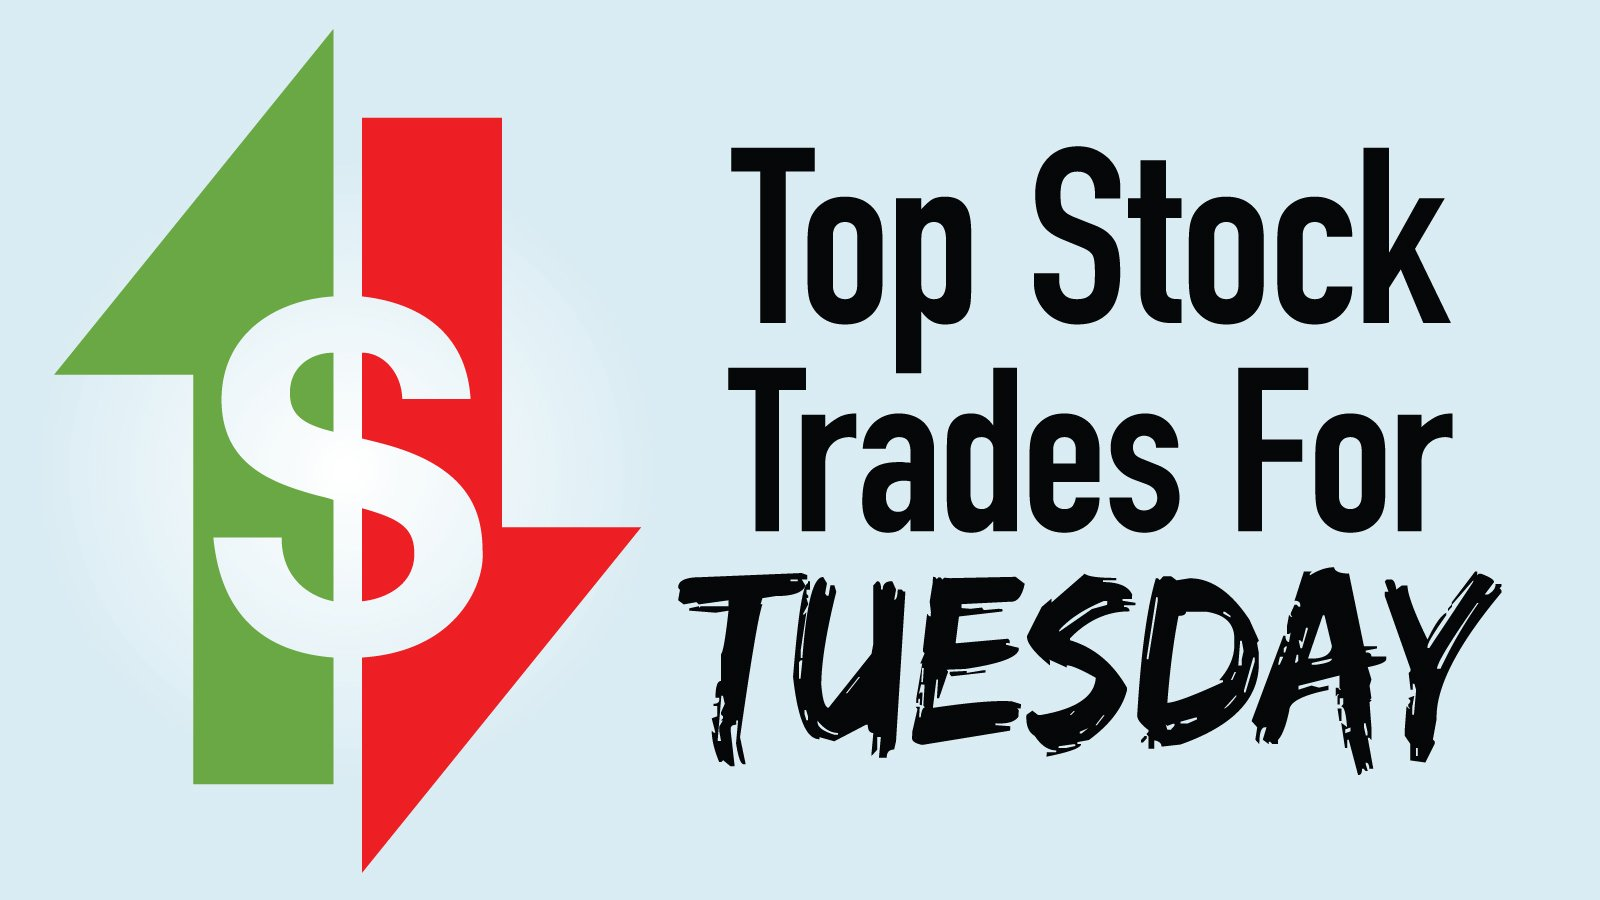 Top stock trades - 4 Top Stock Trades for Tuesday: Ethereum, MS, ROKU, DKNG